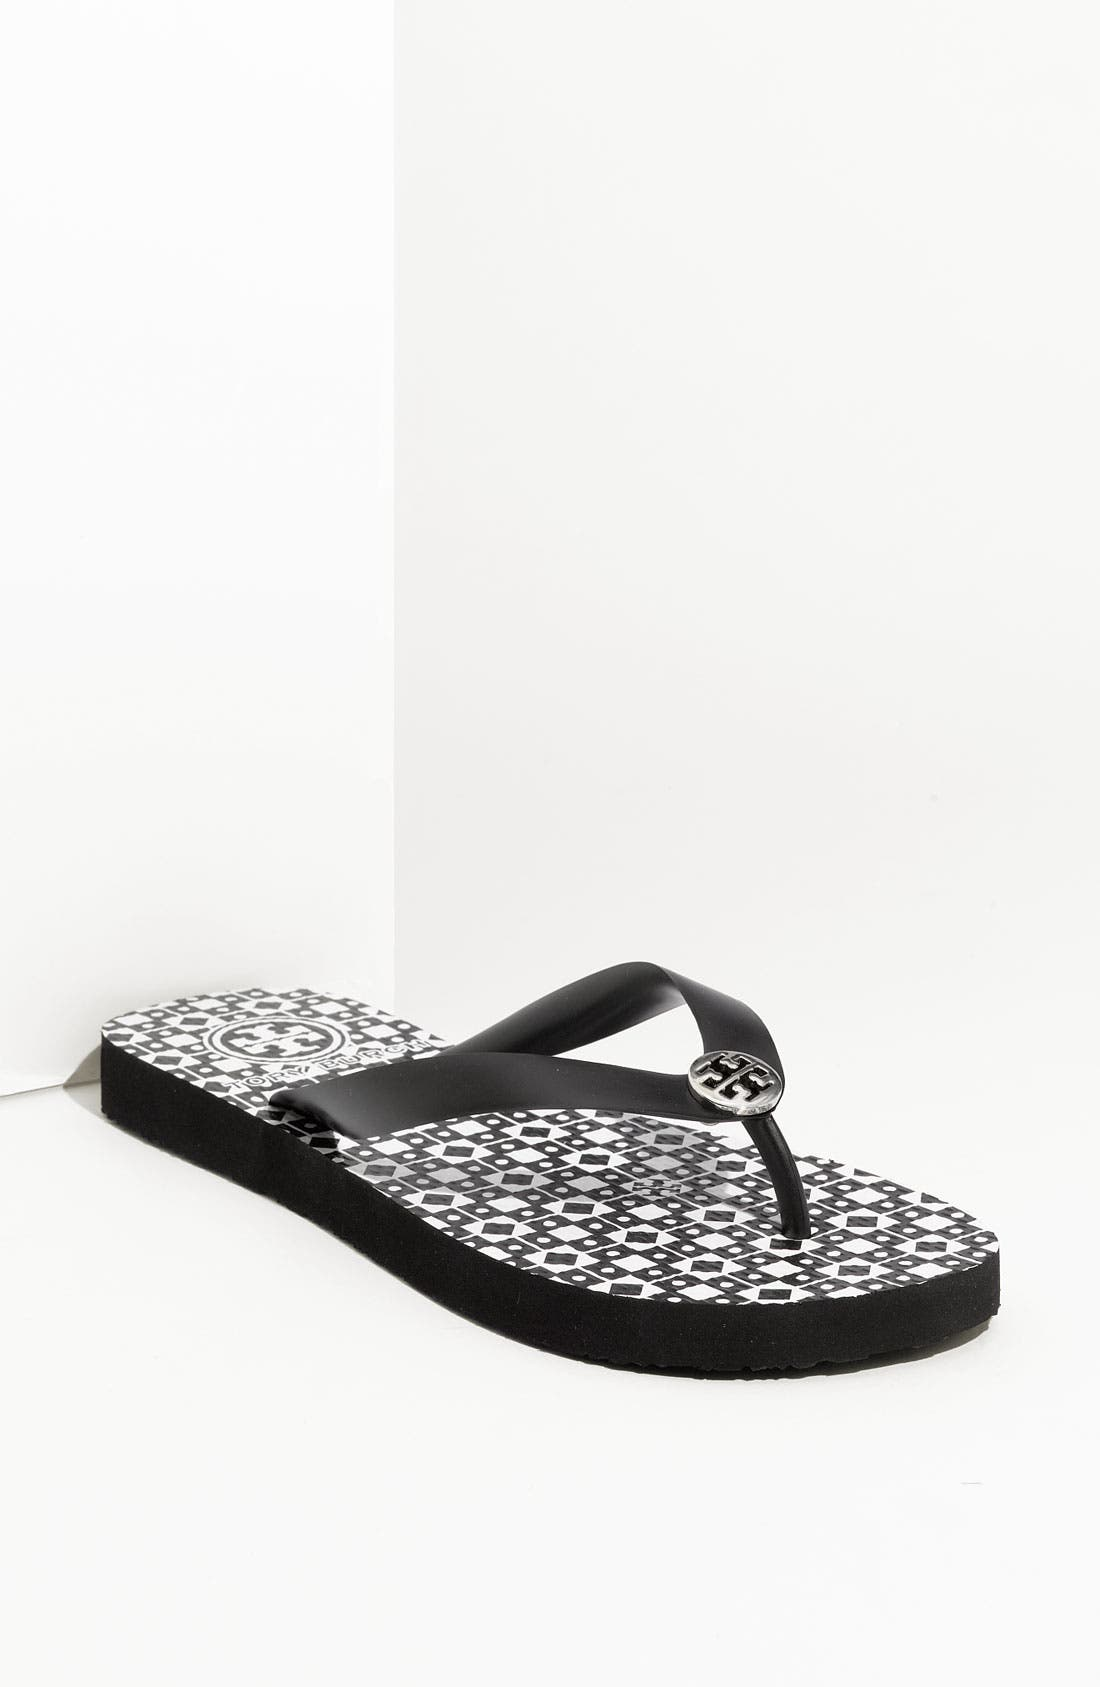 Alternate Image 1 Selected - Tory Burch Enamel Logo Flip Flop